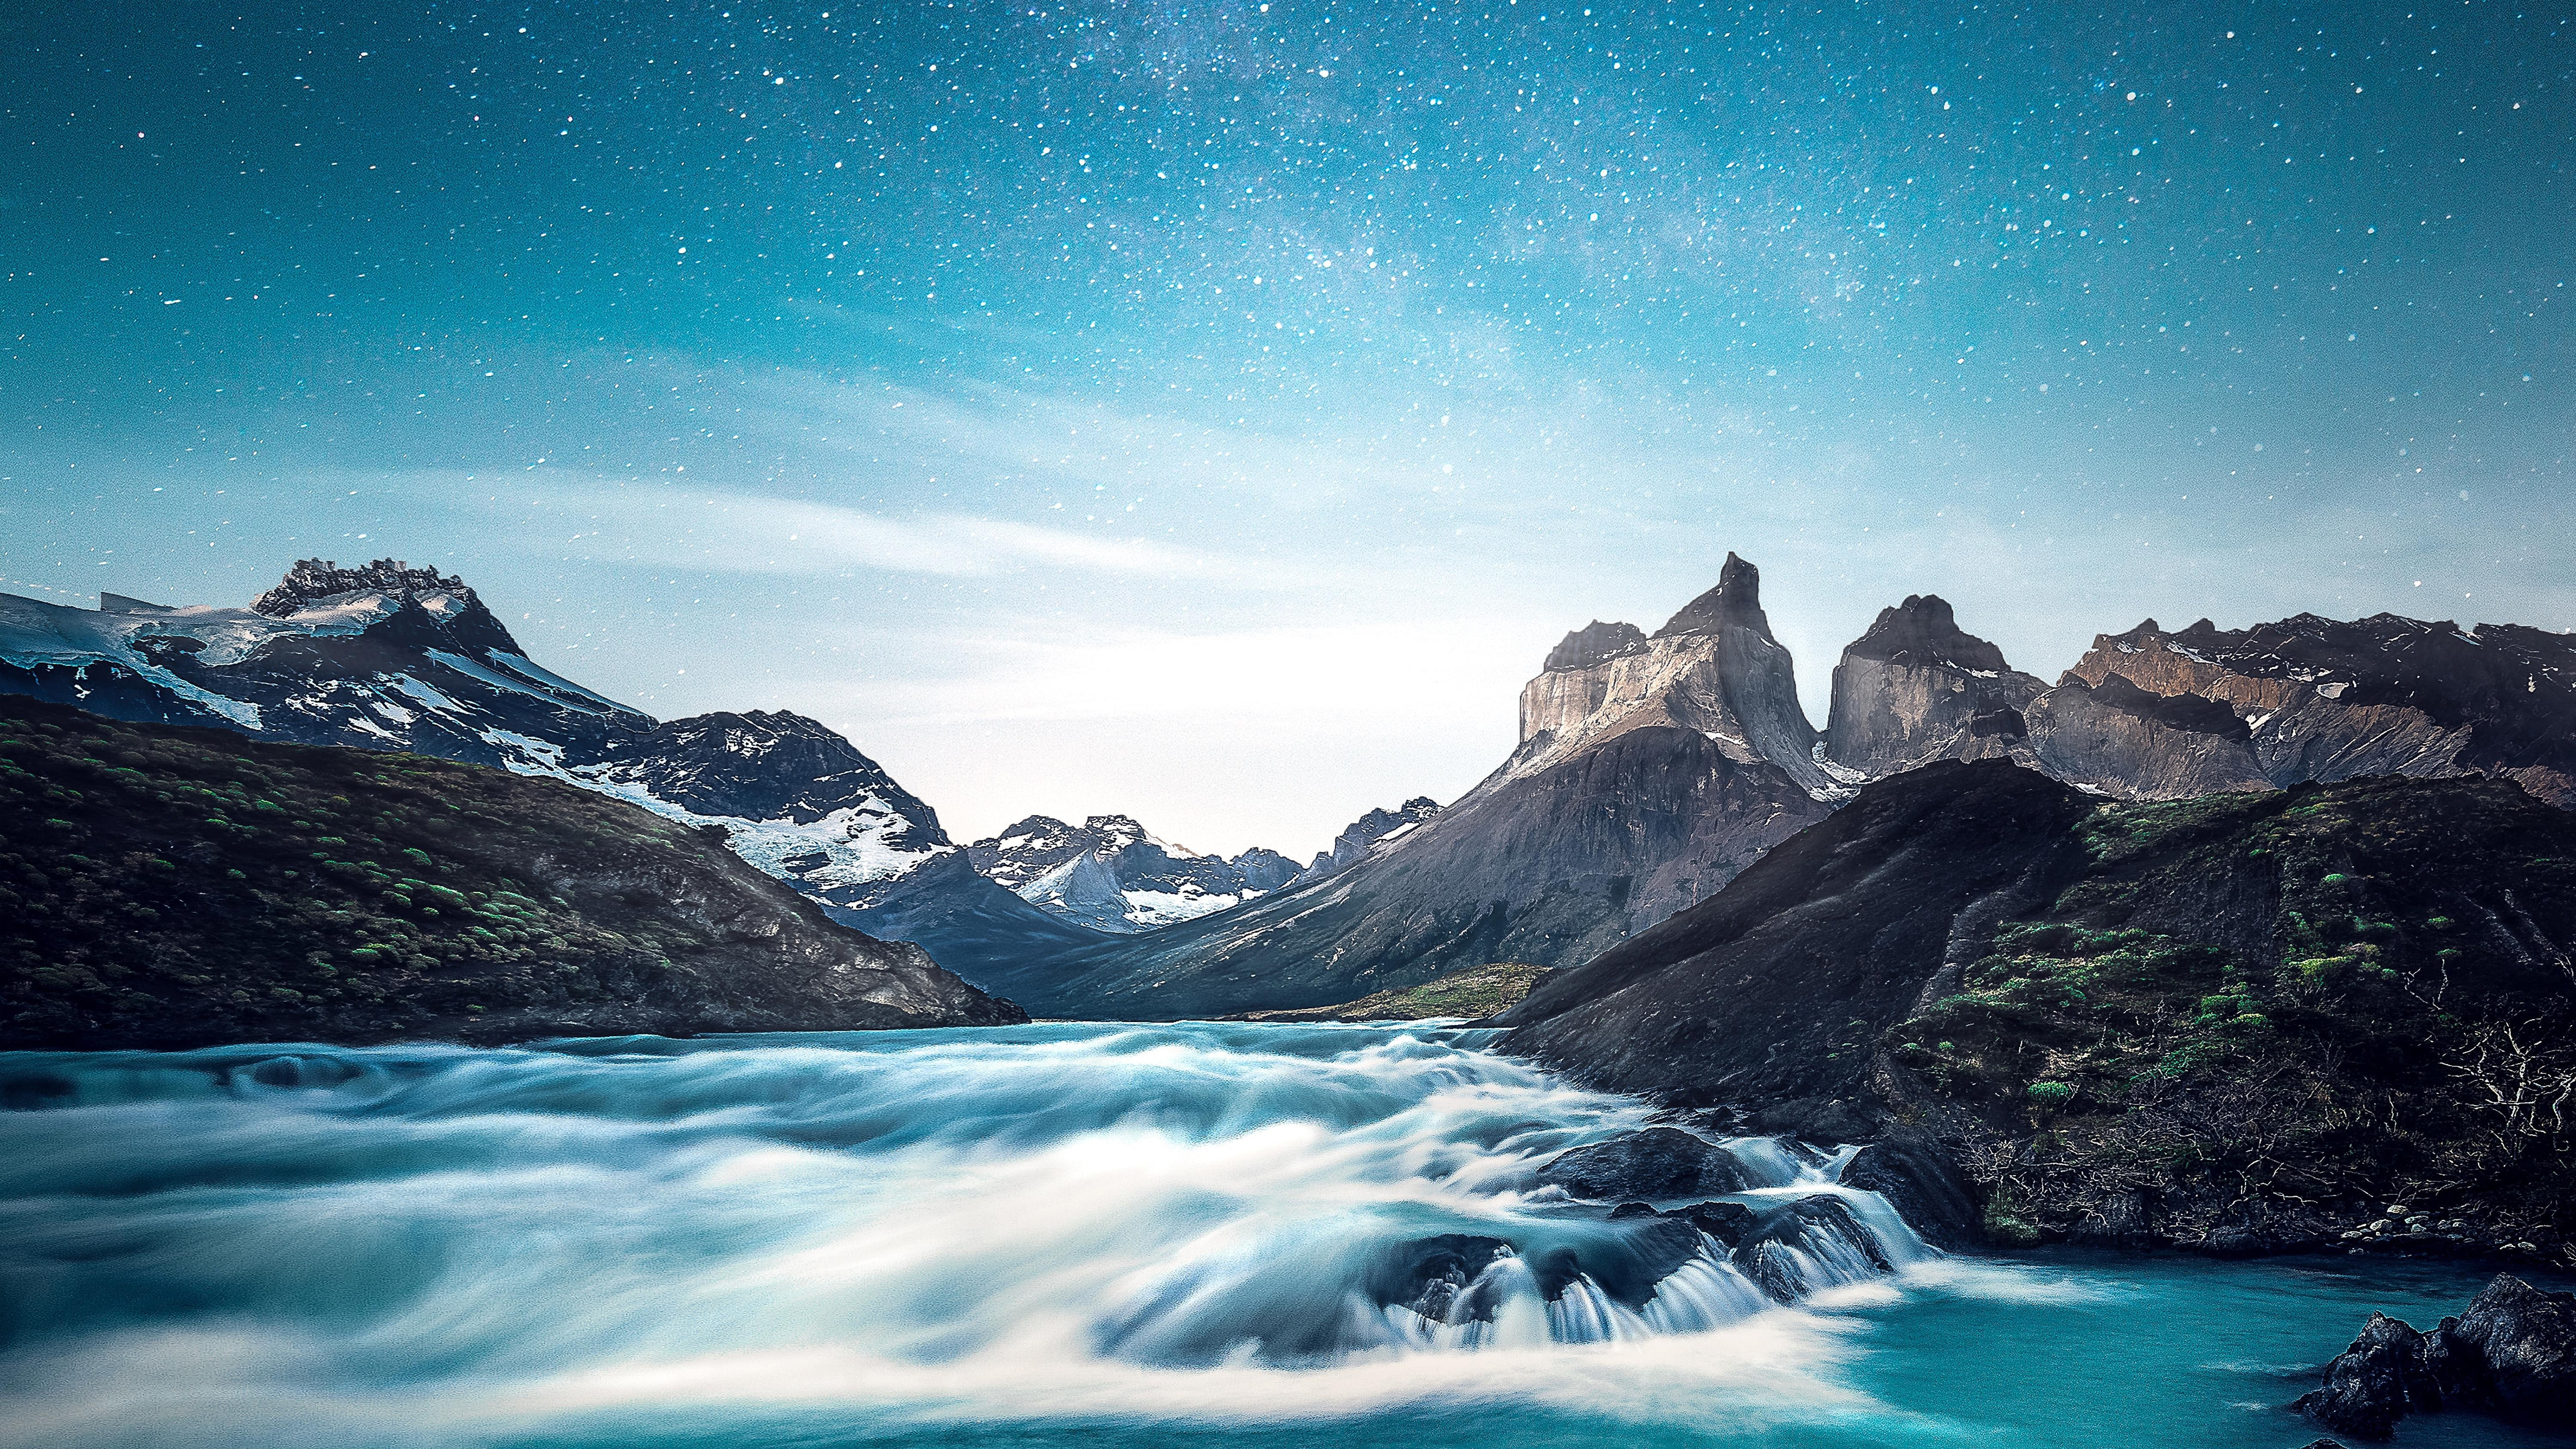 Wallpaper Mountains with river and stars